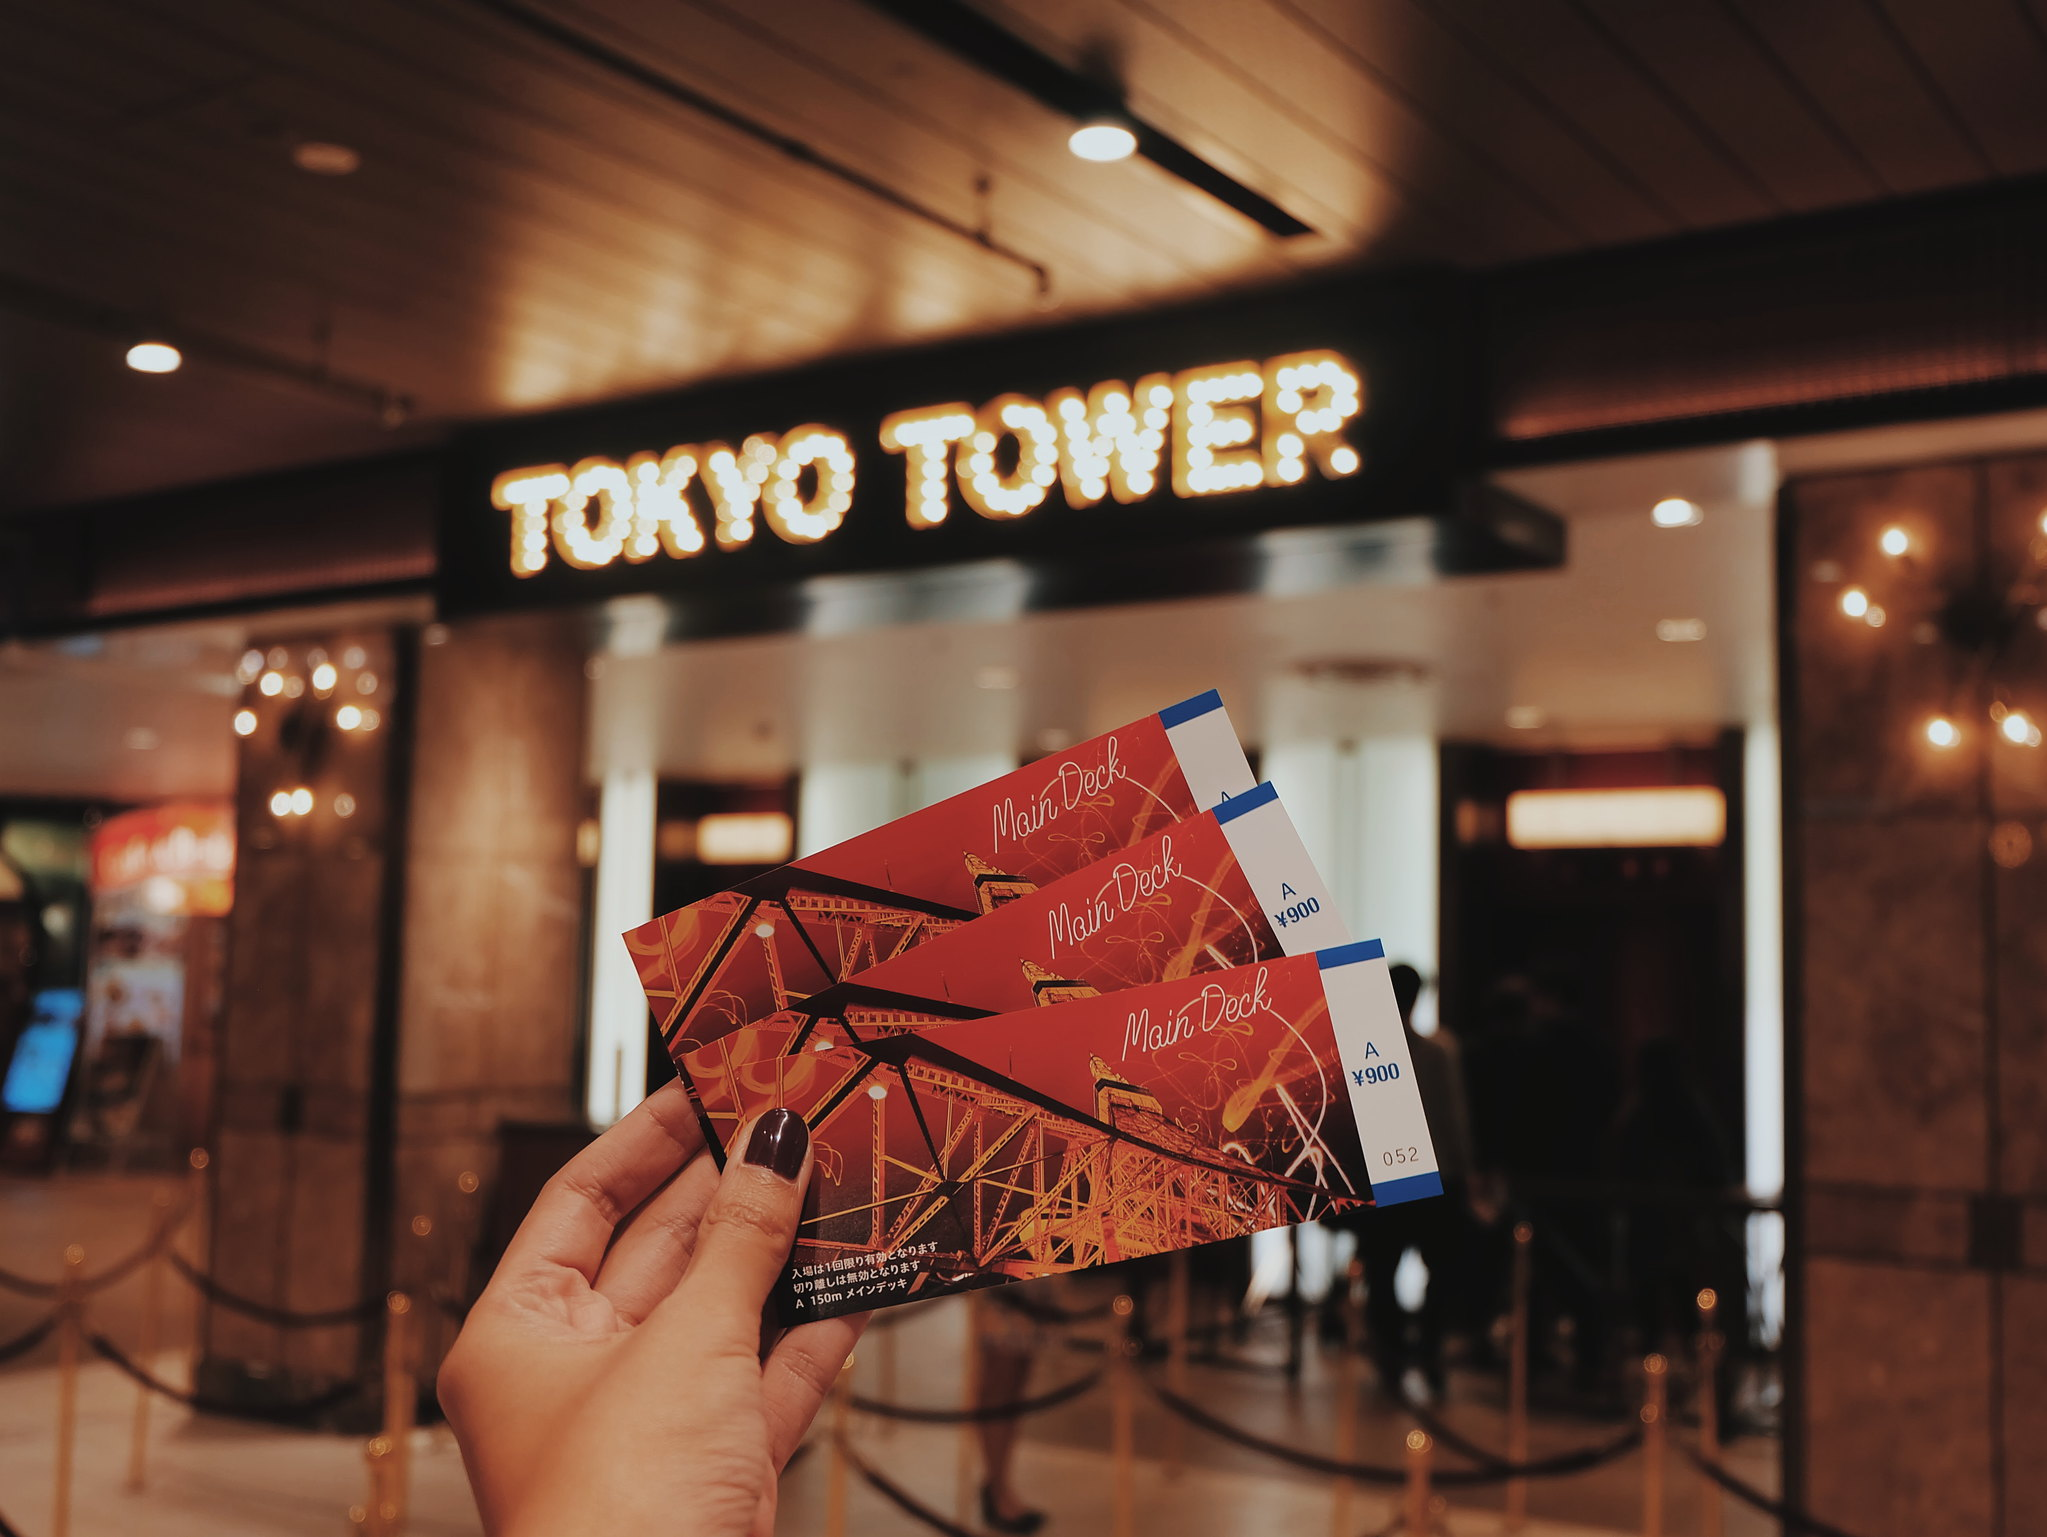 tokyo travel guide 2019  tokyo tower